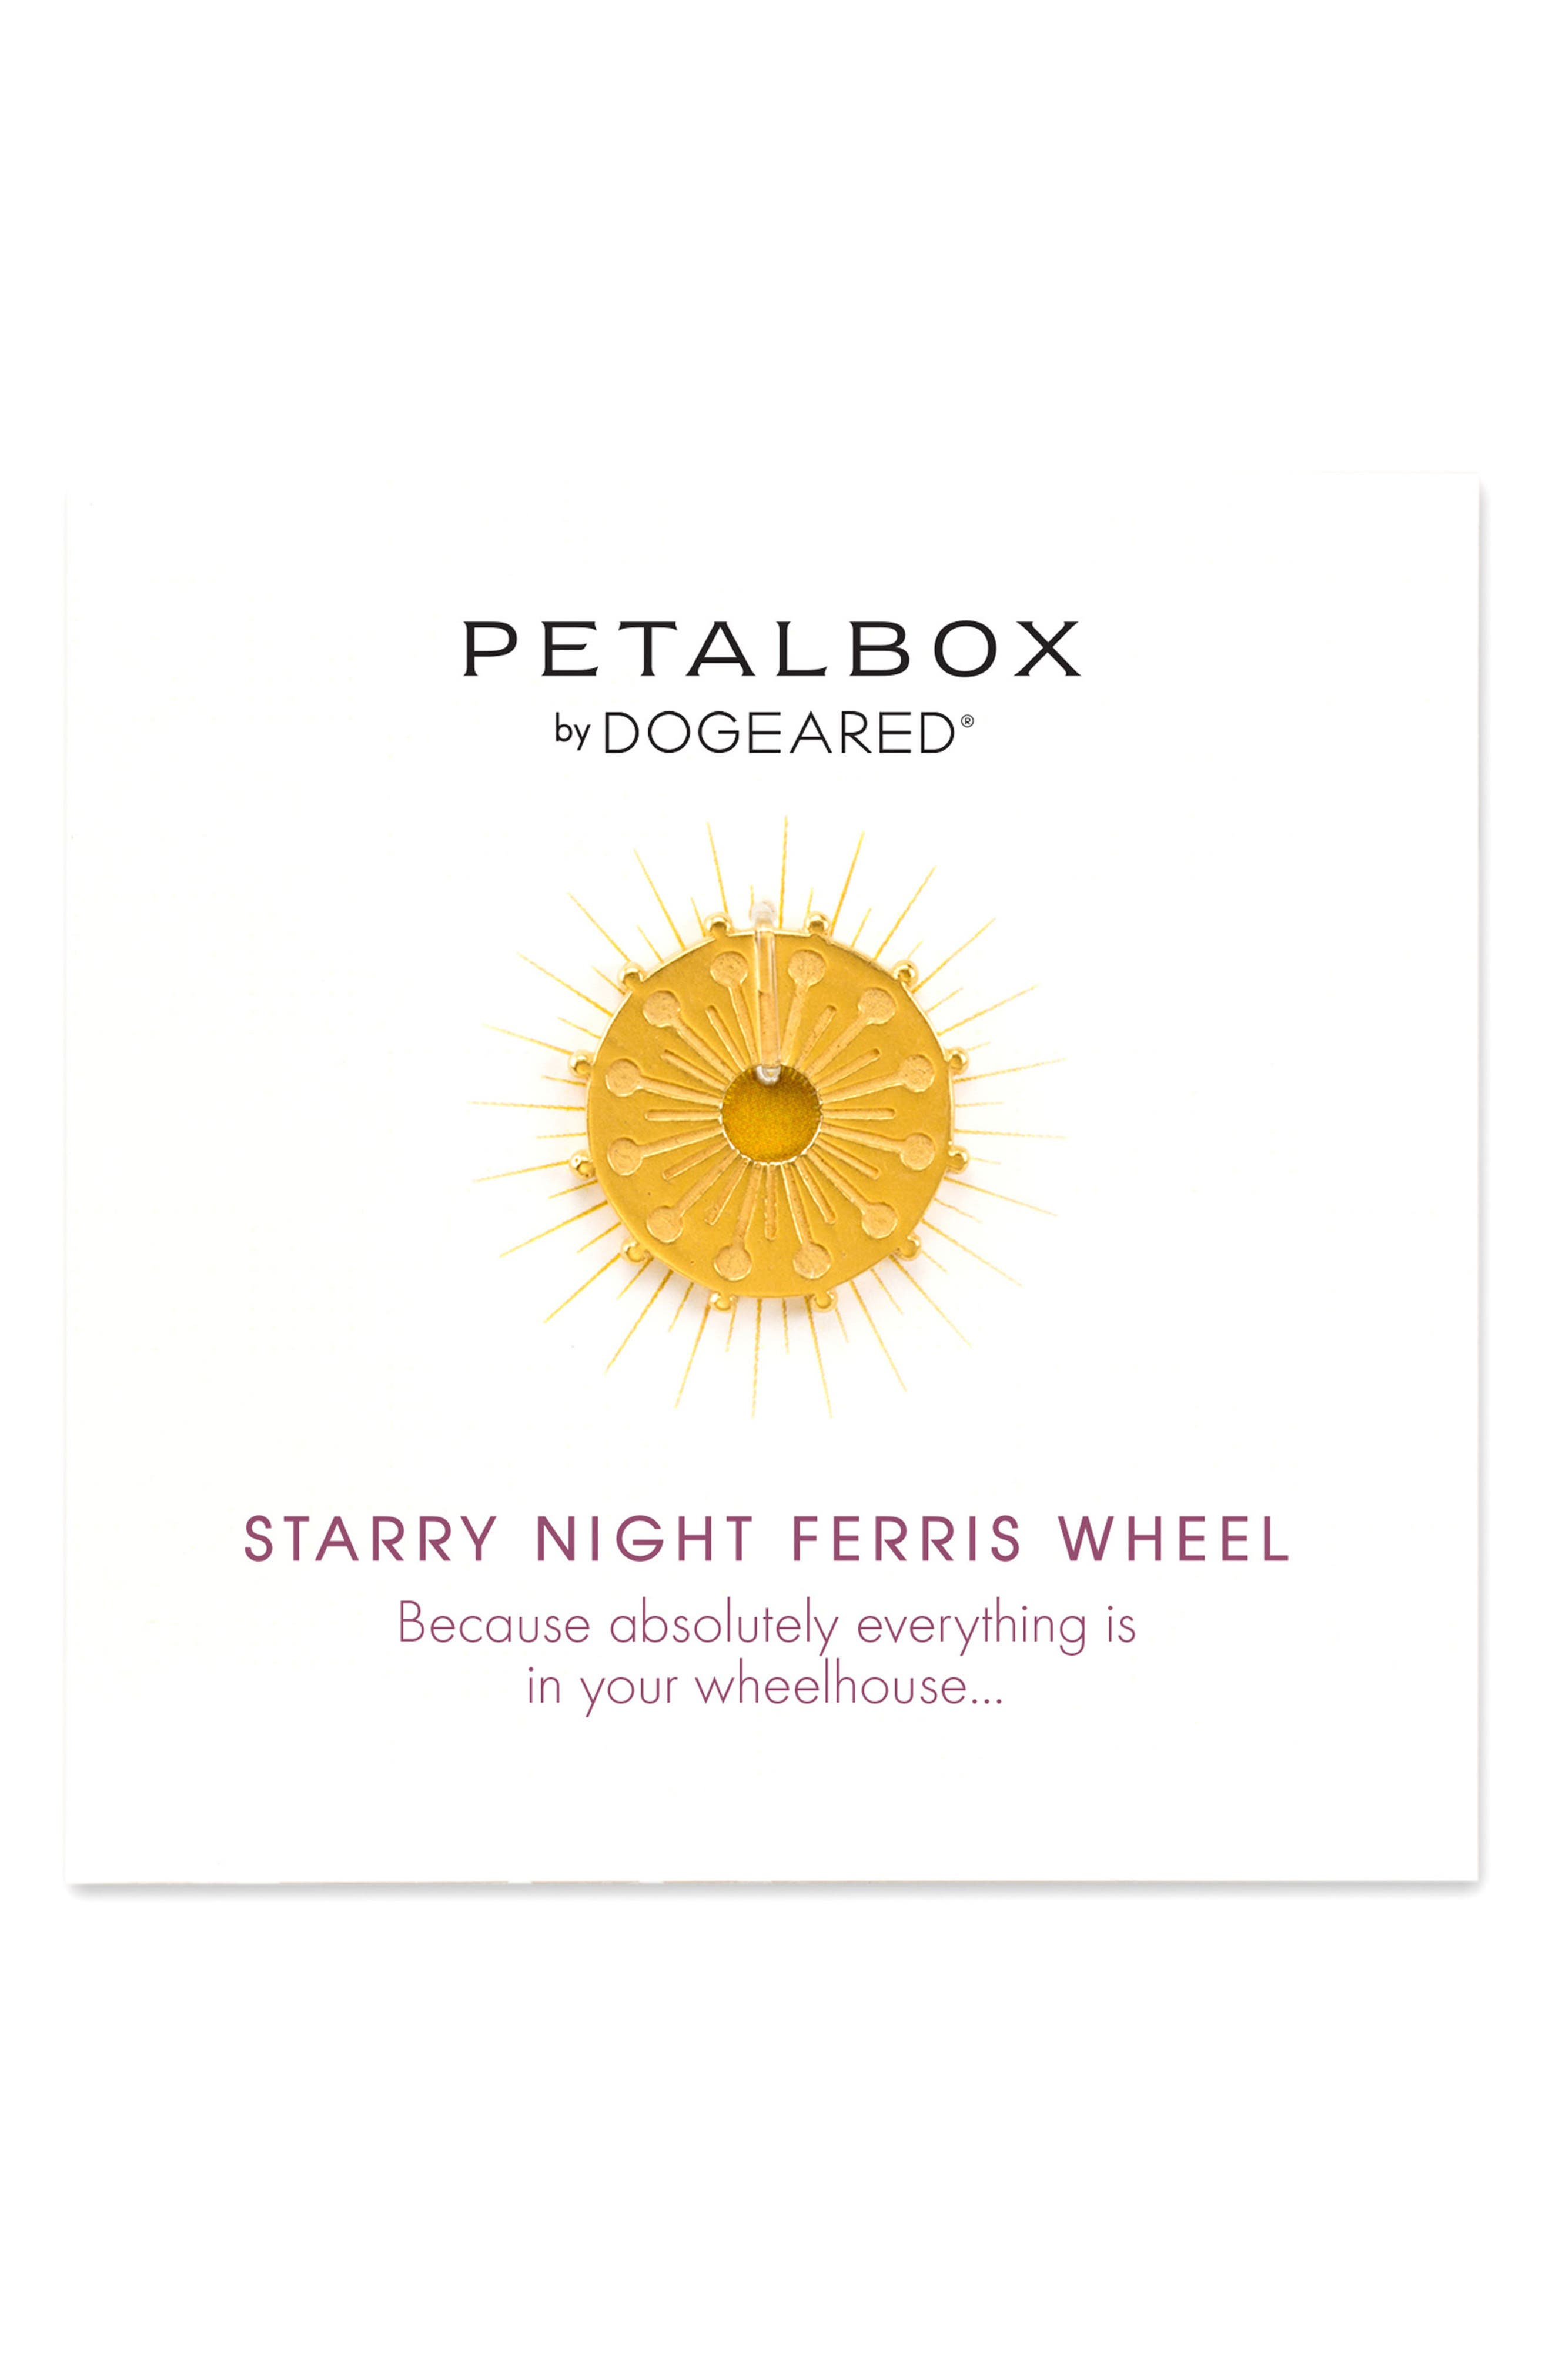 Dogeared Petalbox Starry Night Ferris Wheel Enhancer (Nordstrom Exclusive)